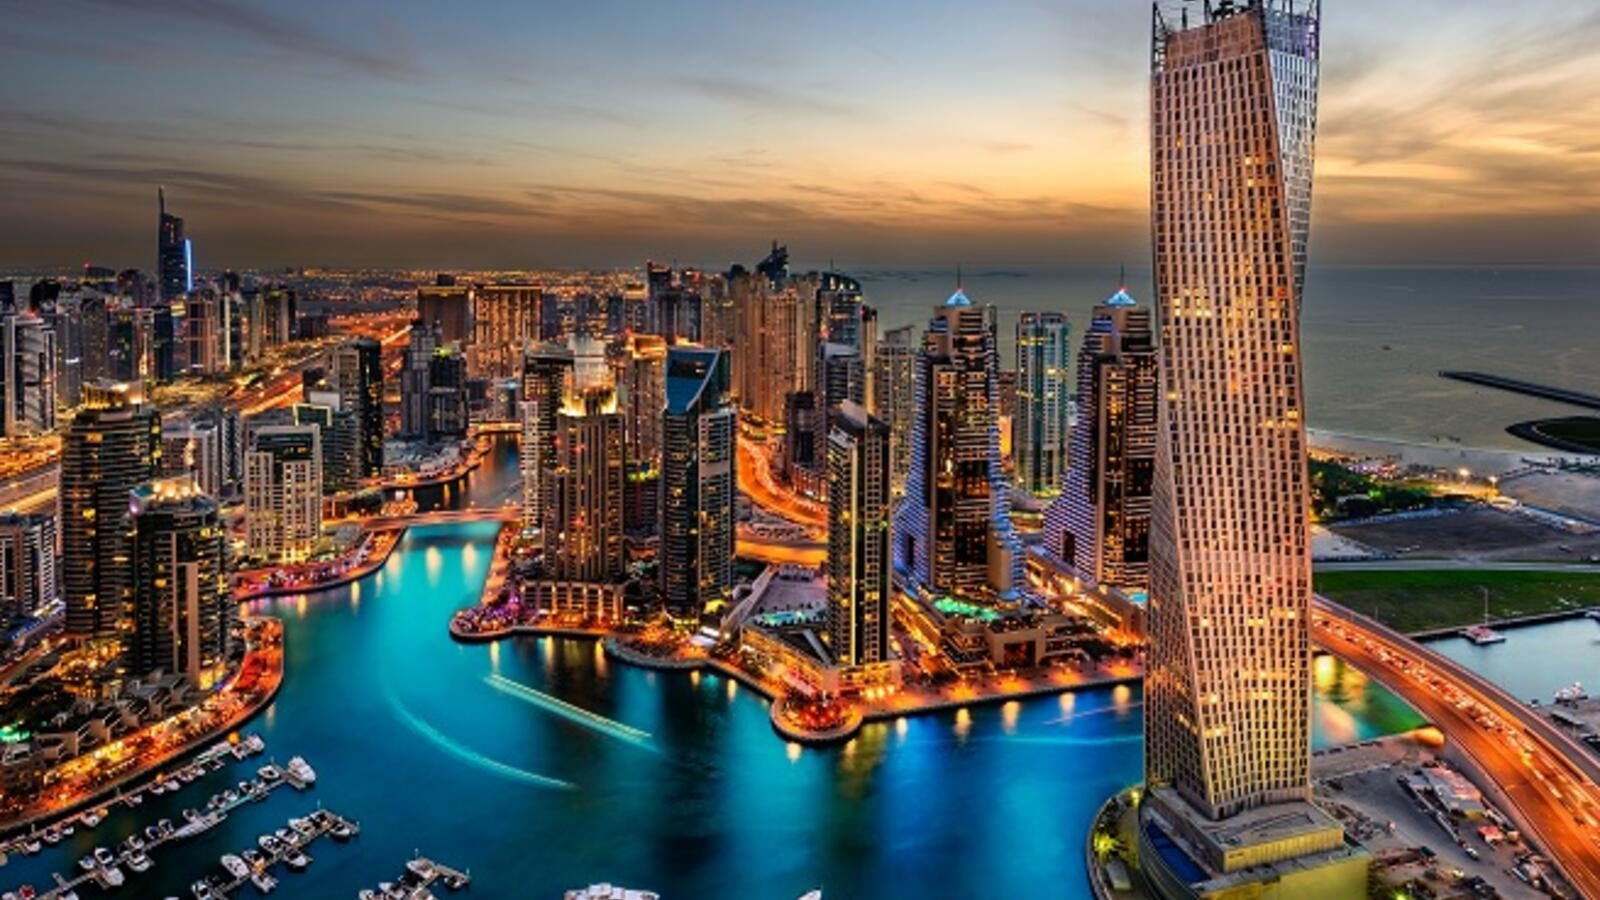 The broadband market in the UAE is one of the most advanced both regionally and globally. (Shutterstock)